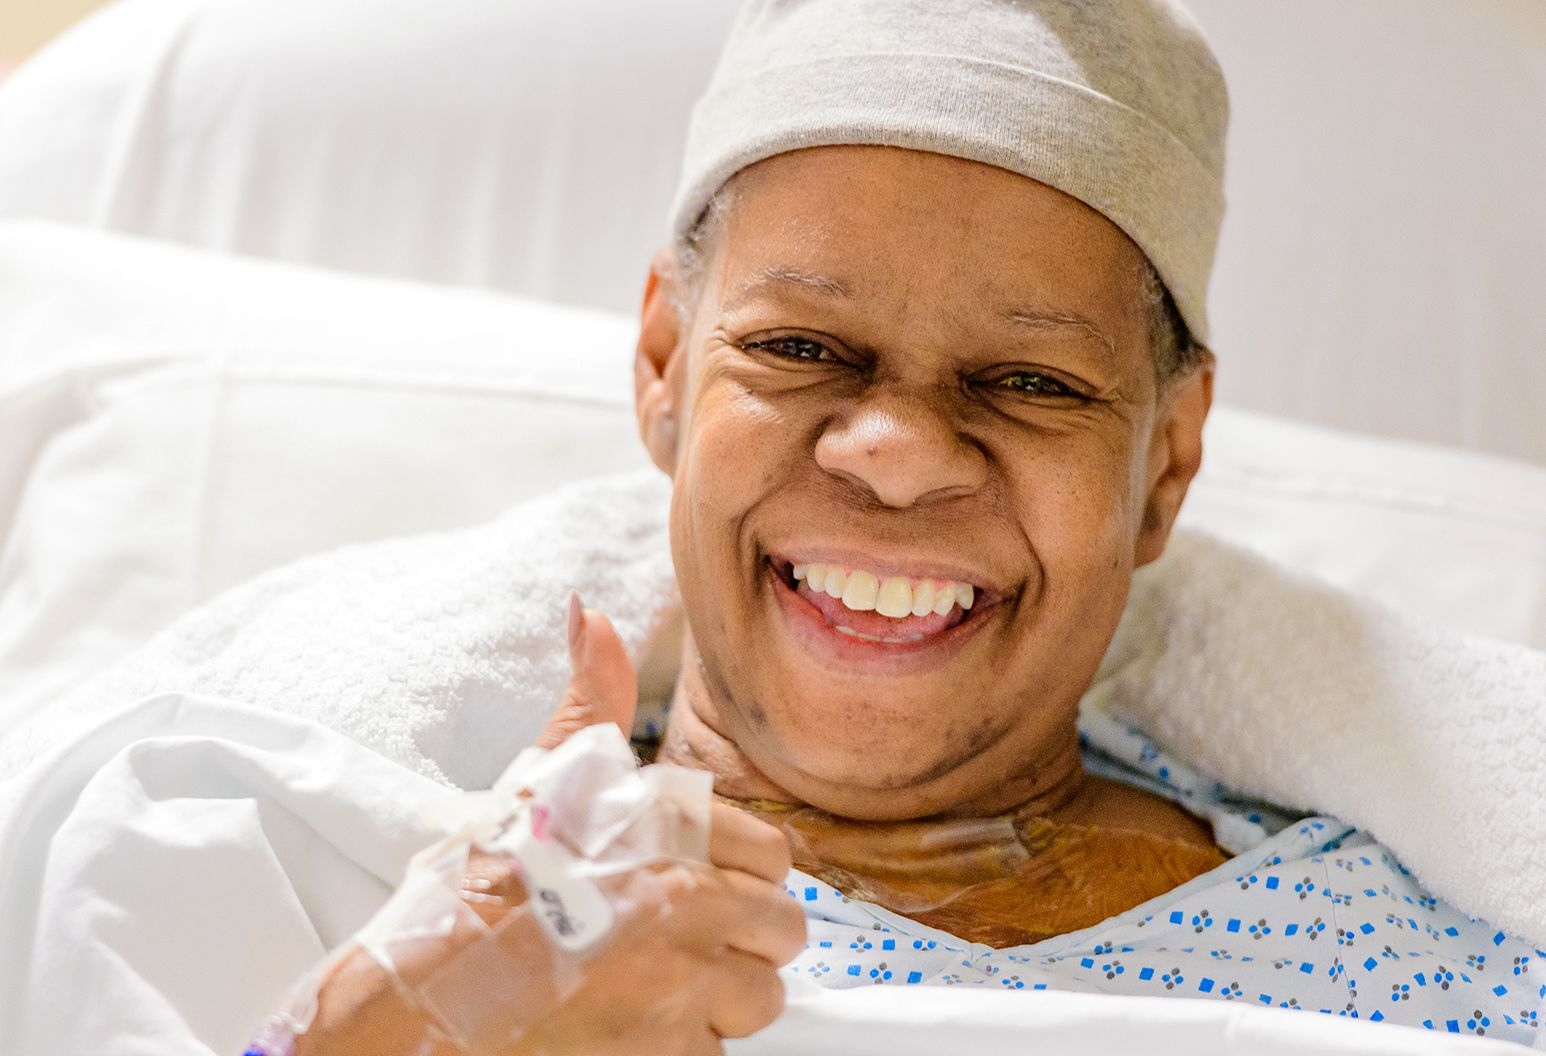 A female patient smiles and gives a thumbs up from a hospital bed after having a heart transplant.